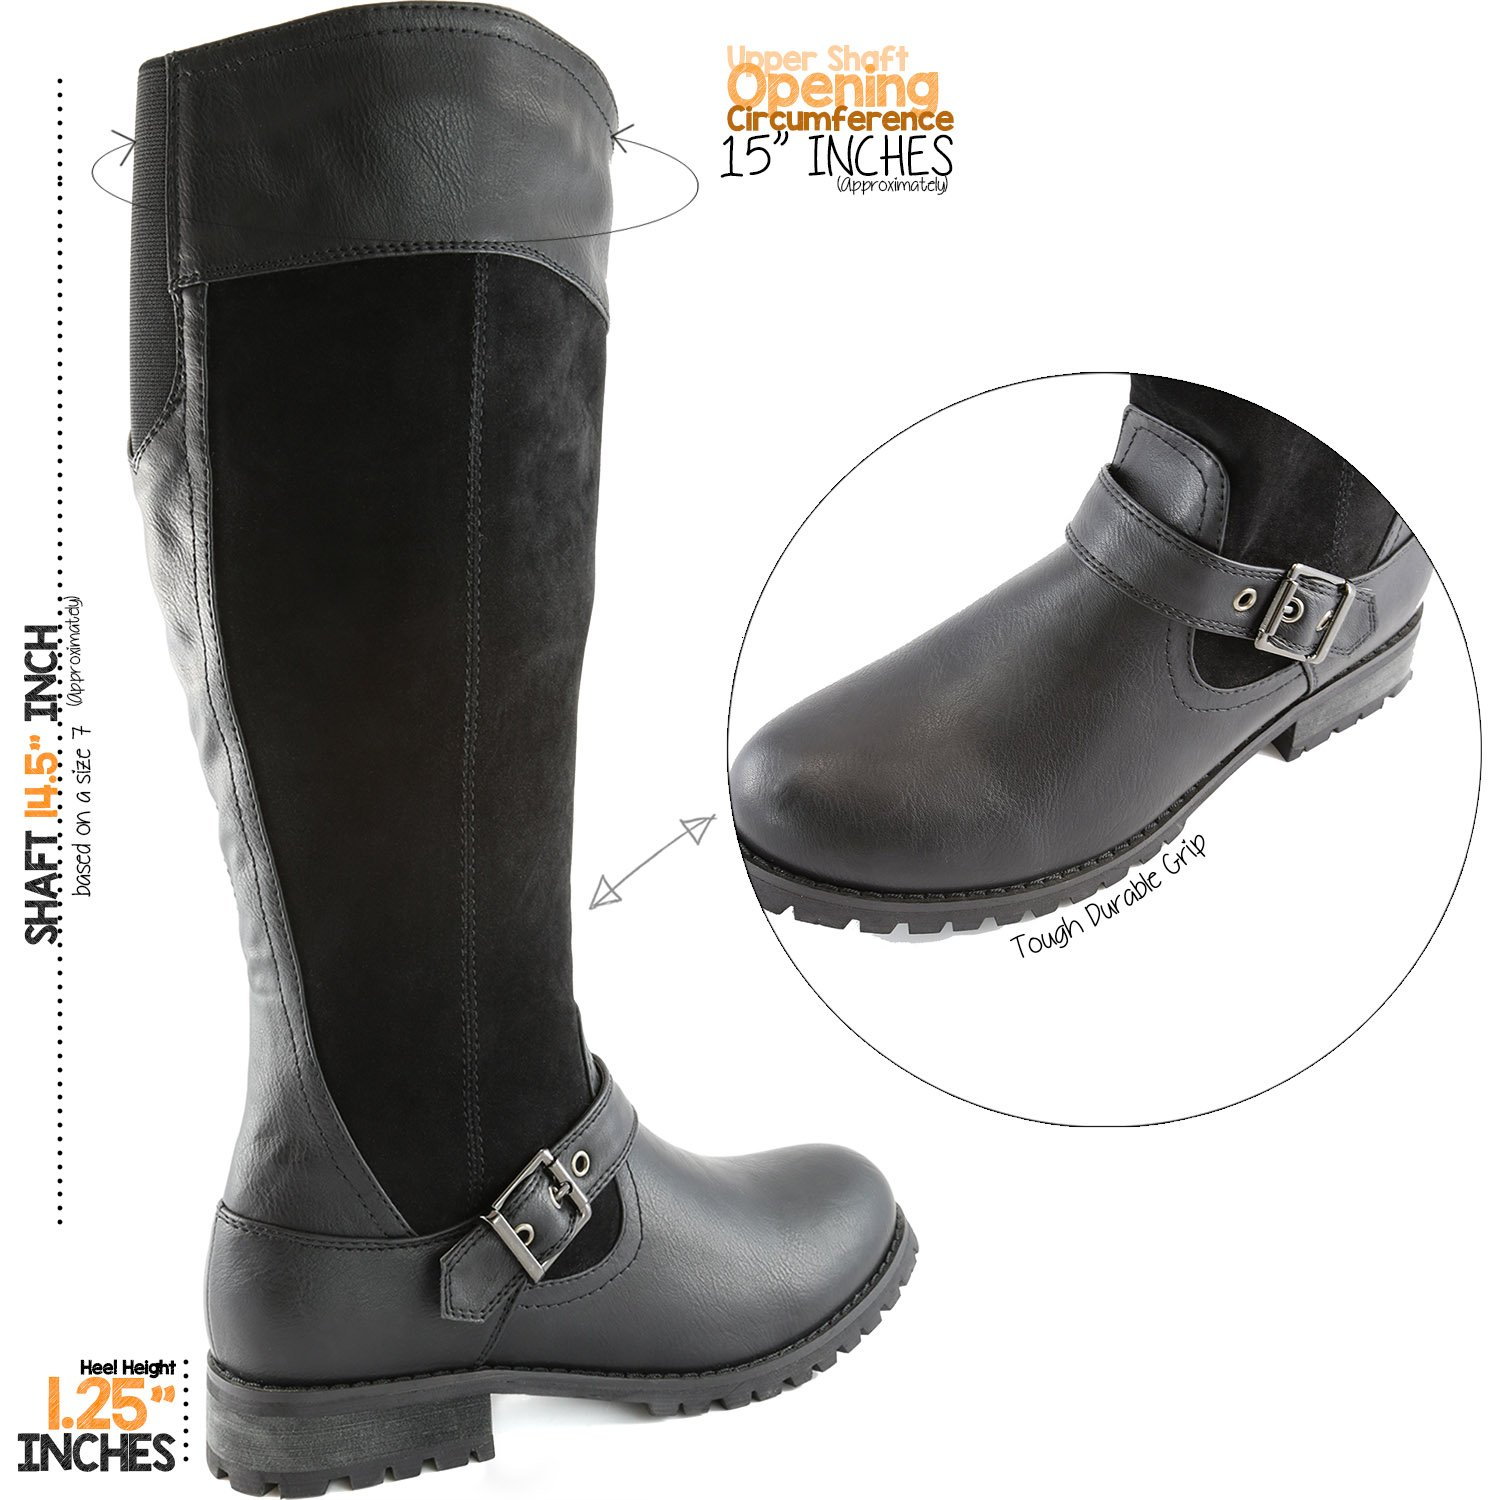 DailyShoes Women's Knee High Ankle Buckle Strap Military Combat Boots, 9 B(M) US Black SV by DailyShoes (Image #4)